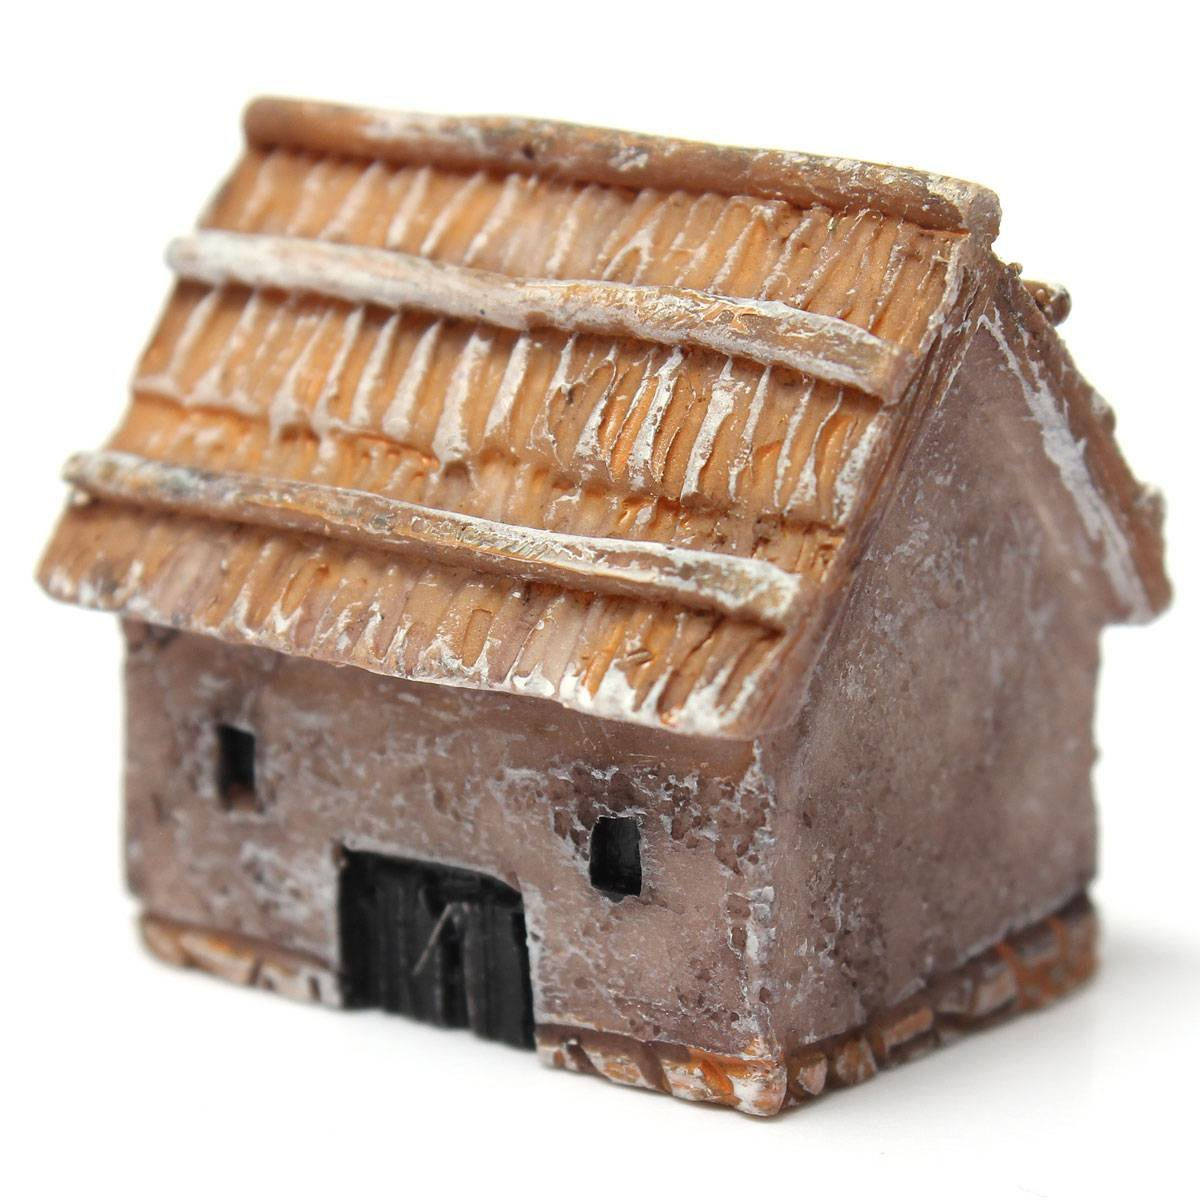 online get cheap cottage wooden aliexpress com alibaba group miniature classic rustic cottages craft woodland planter pot garden home decor small